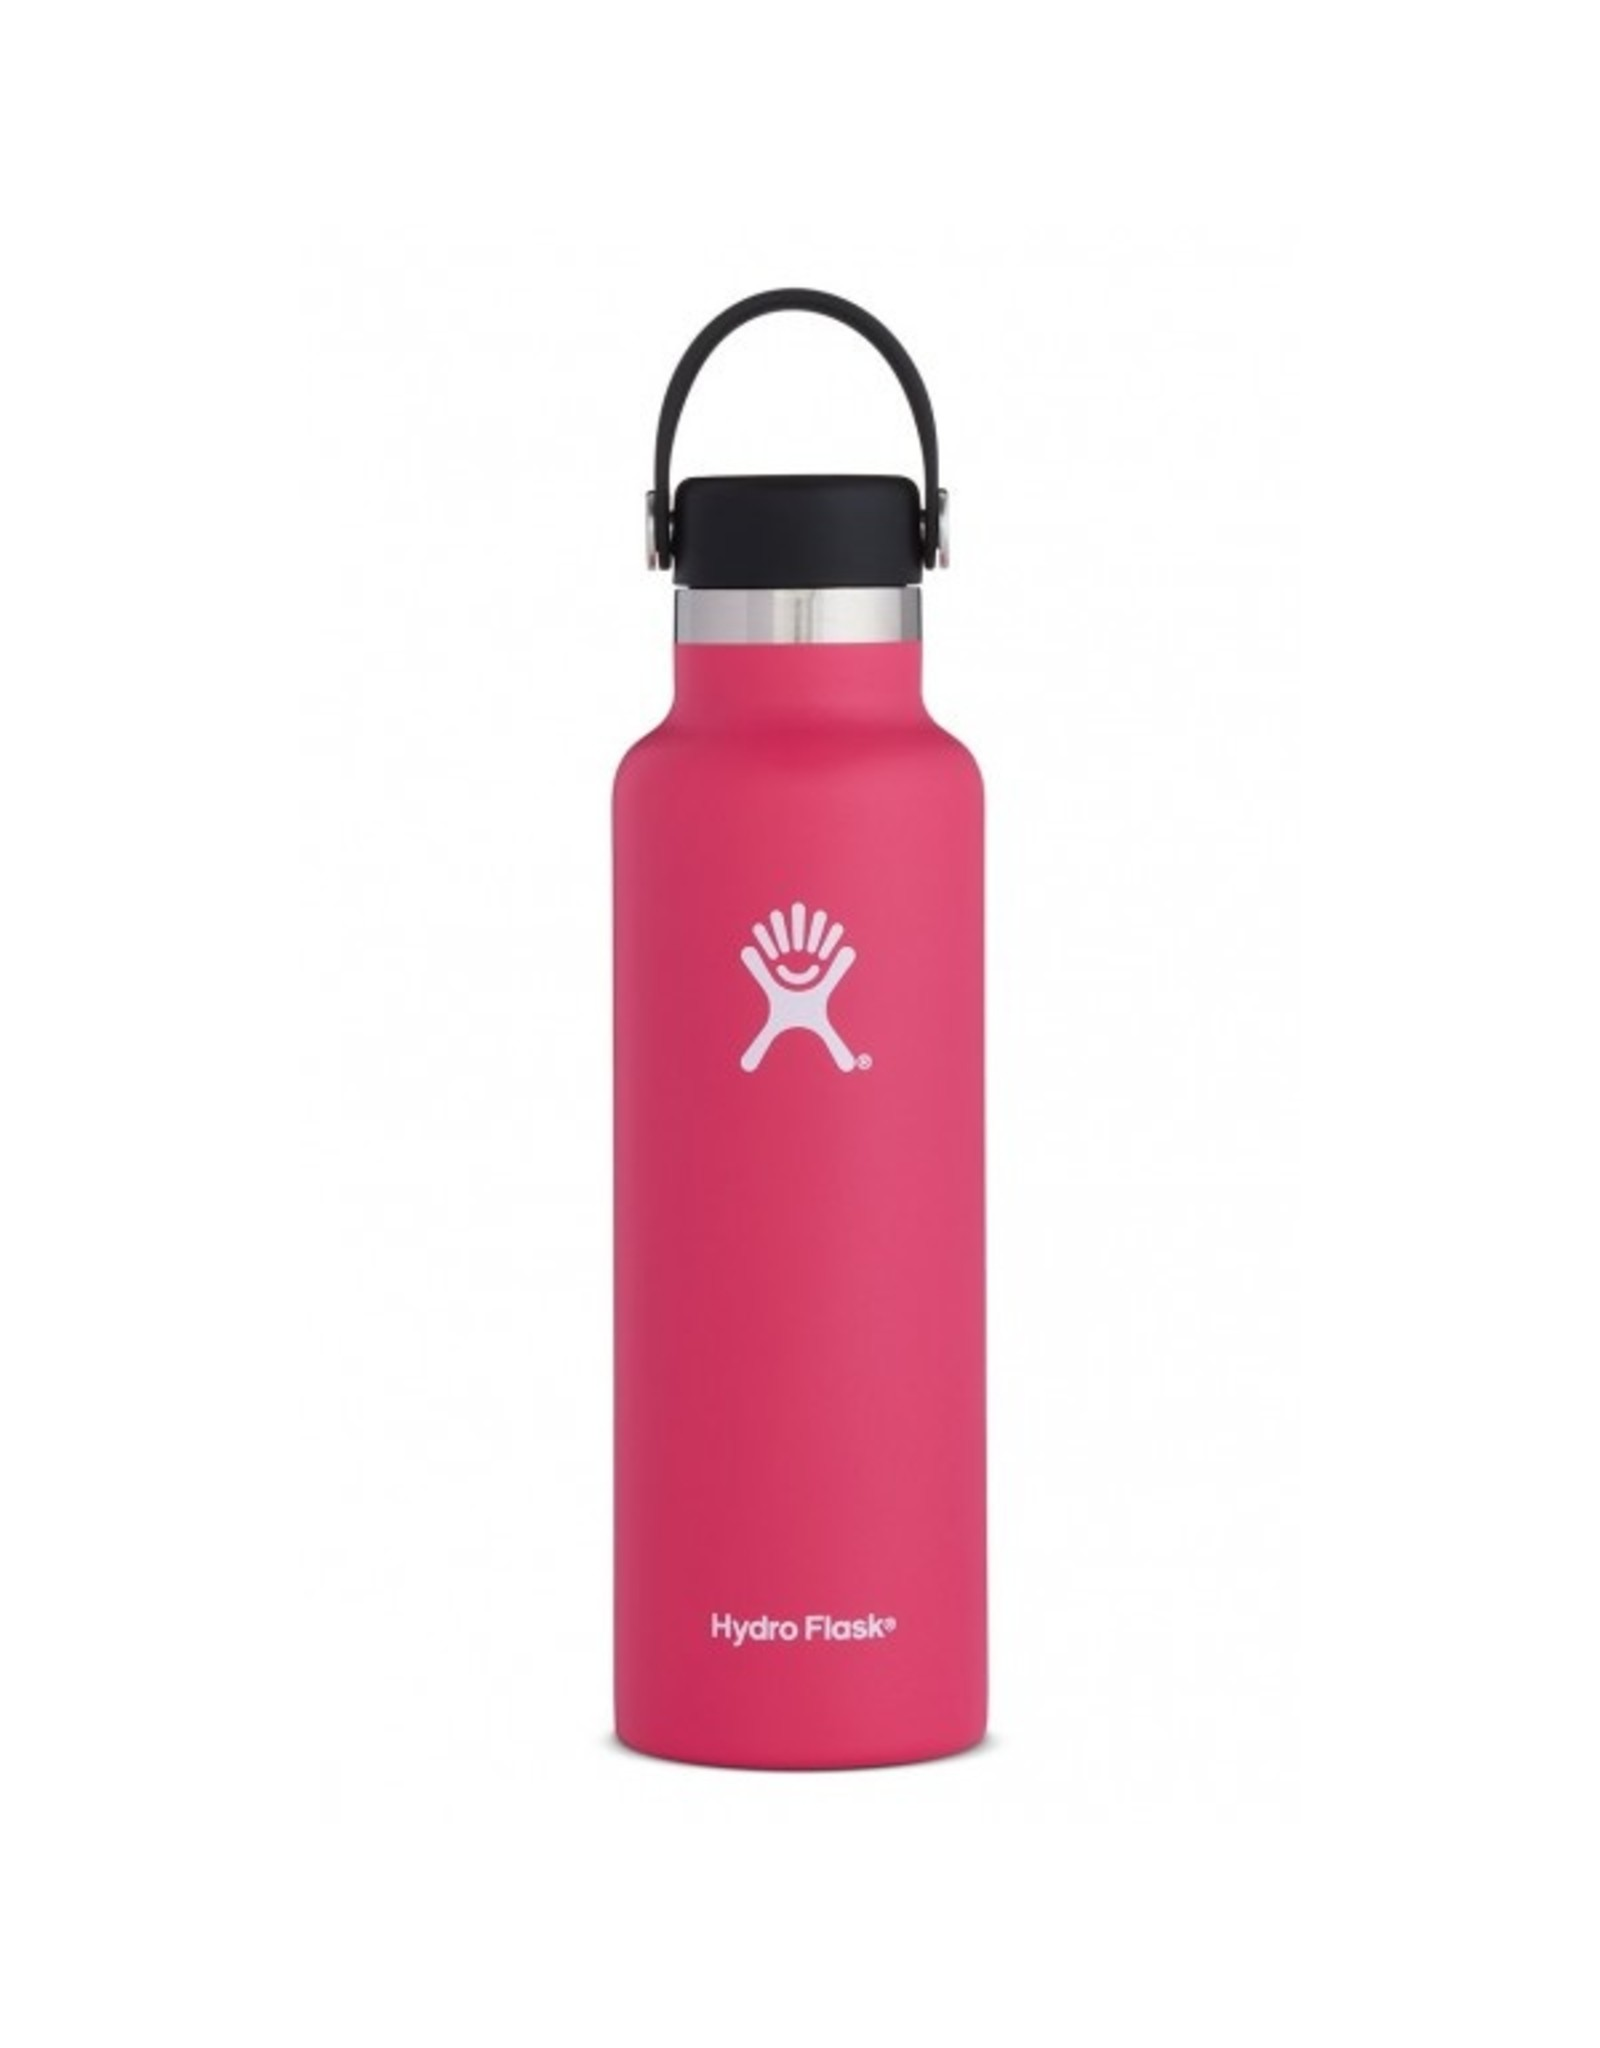 Hydro Flask Hydro Flask 21oz Standard Mouth